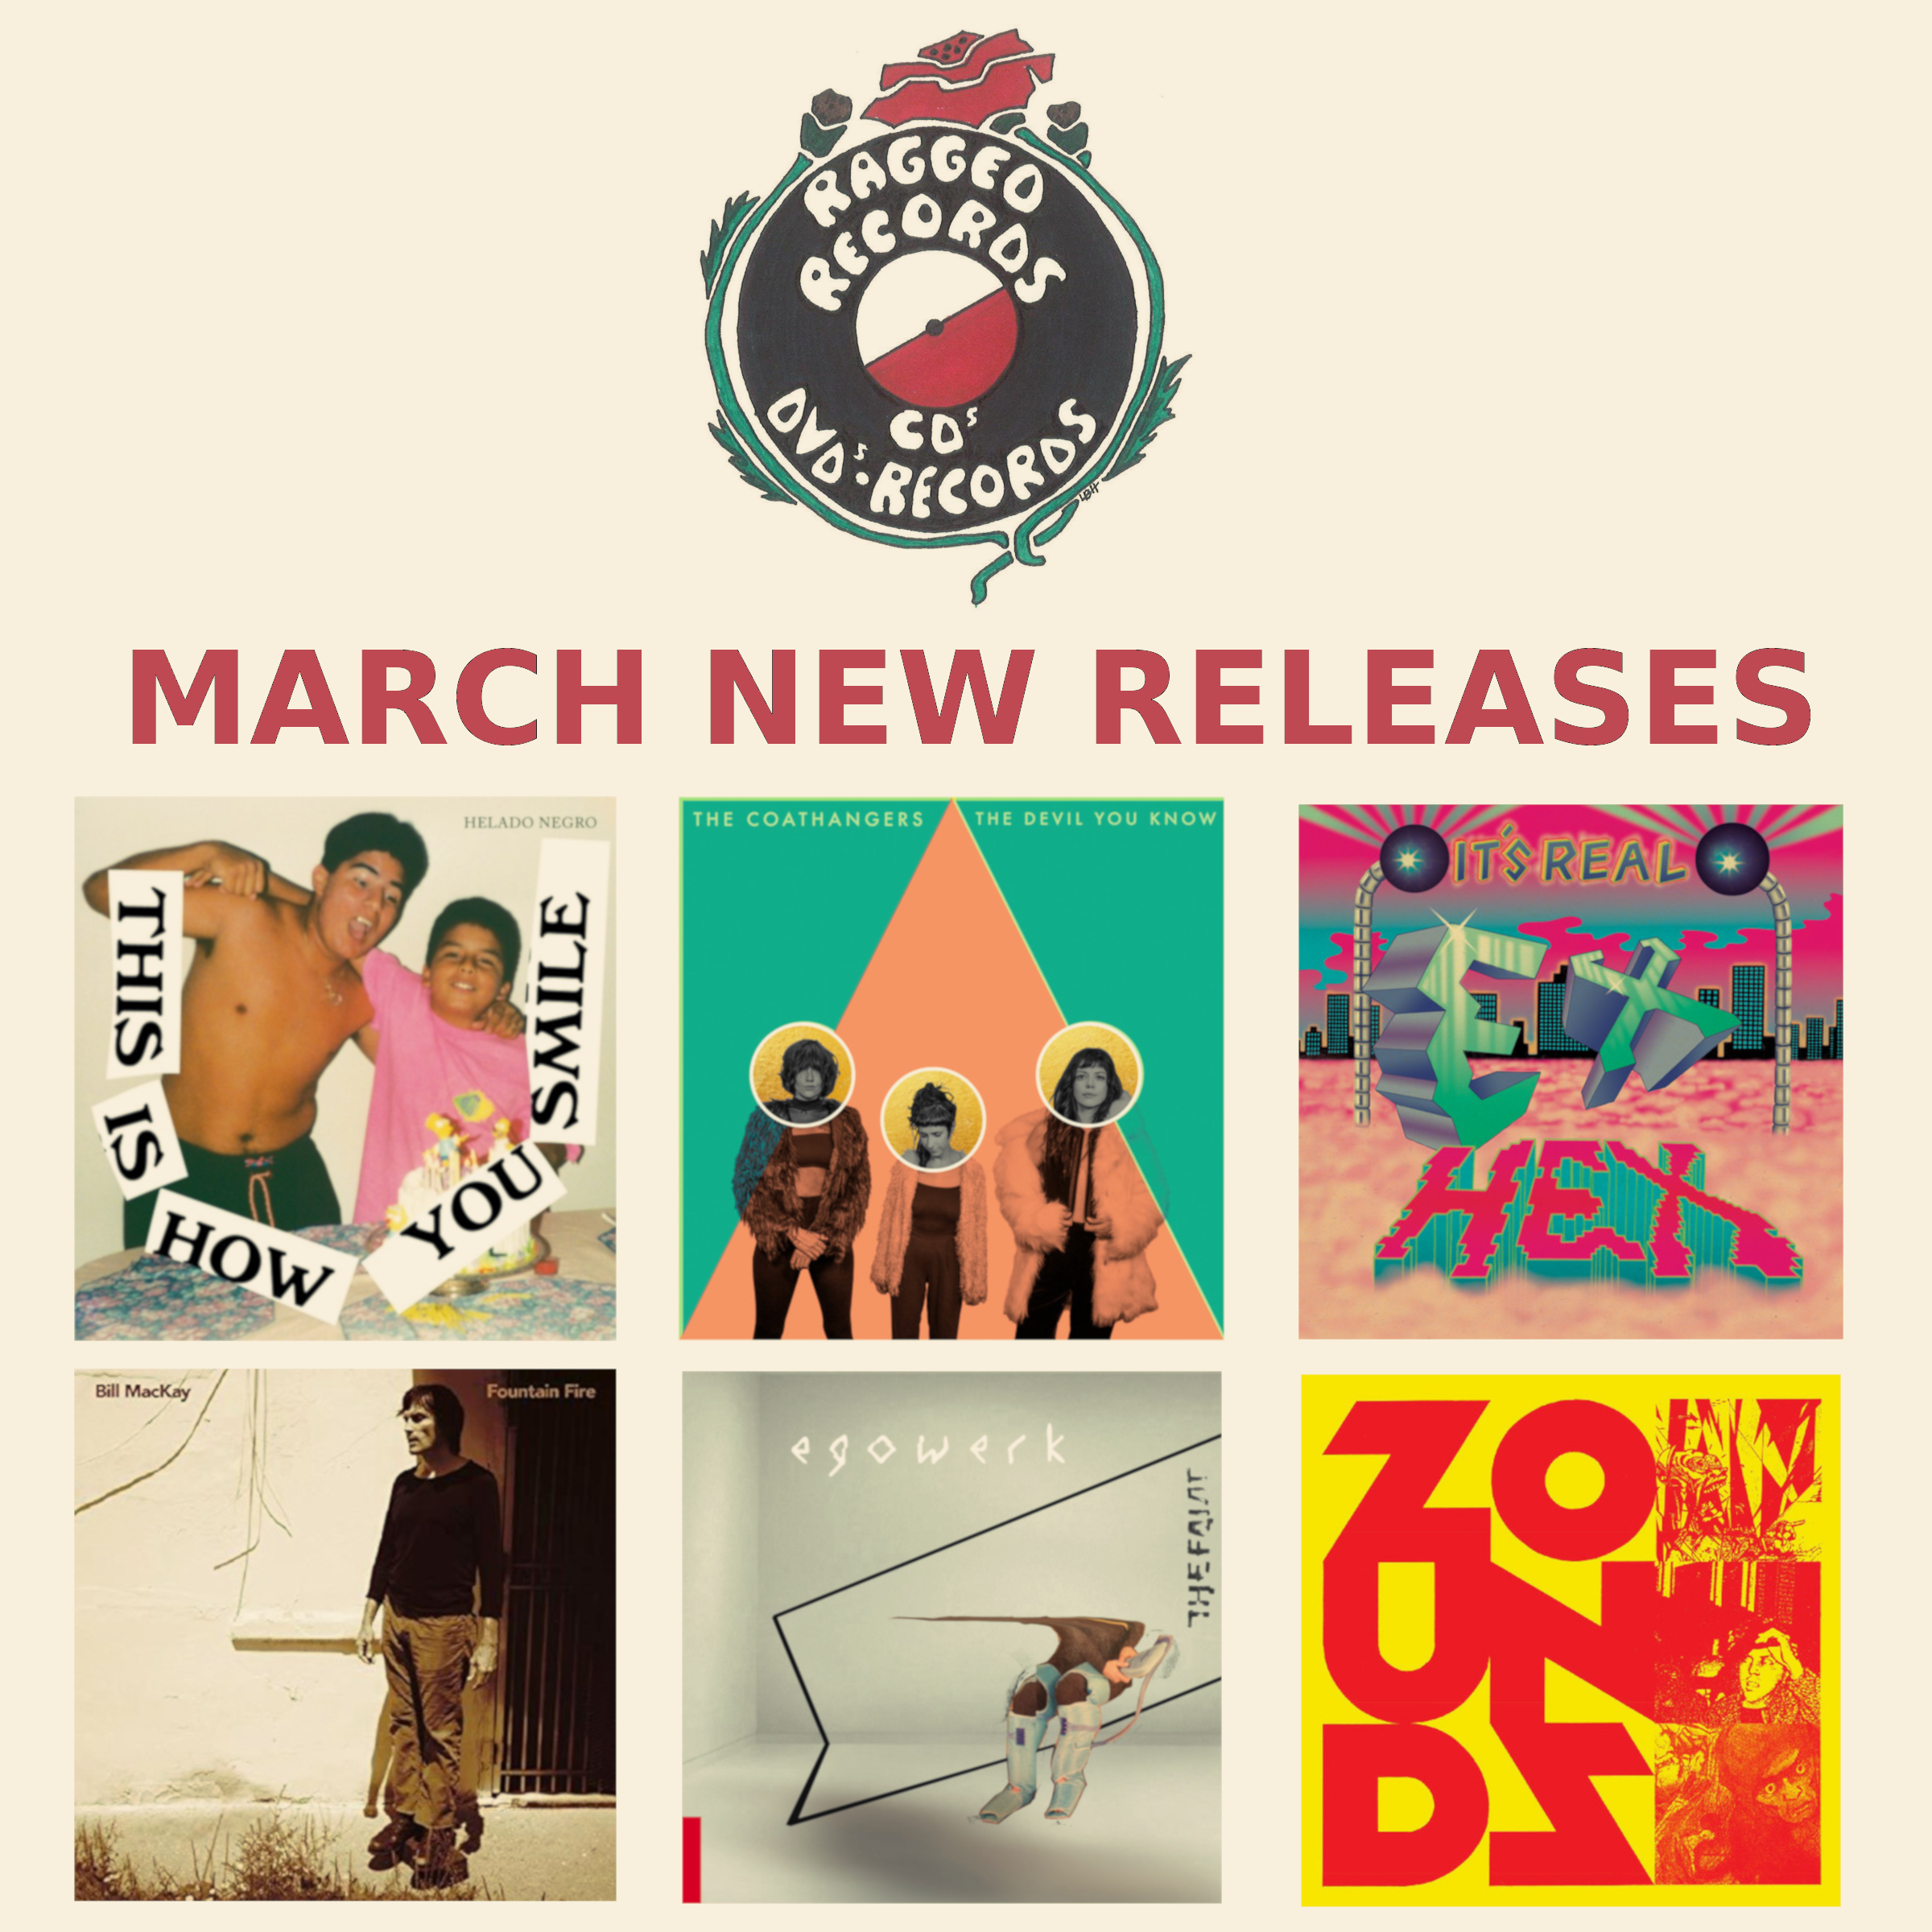 March New Releases.jpg